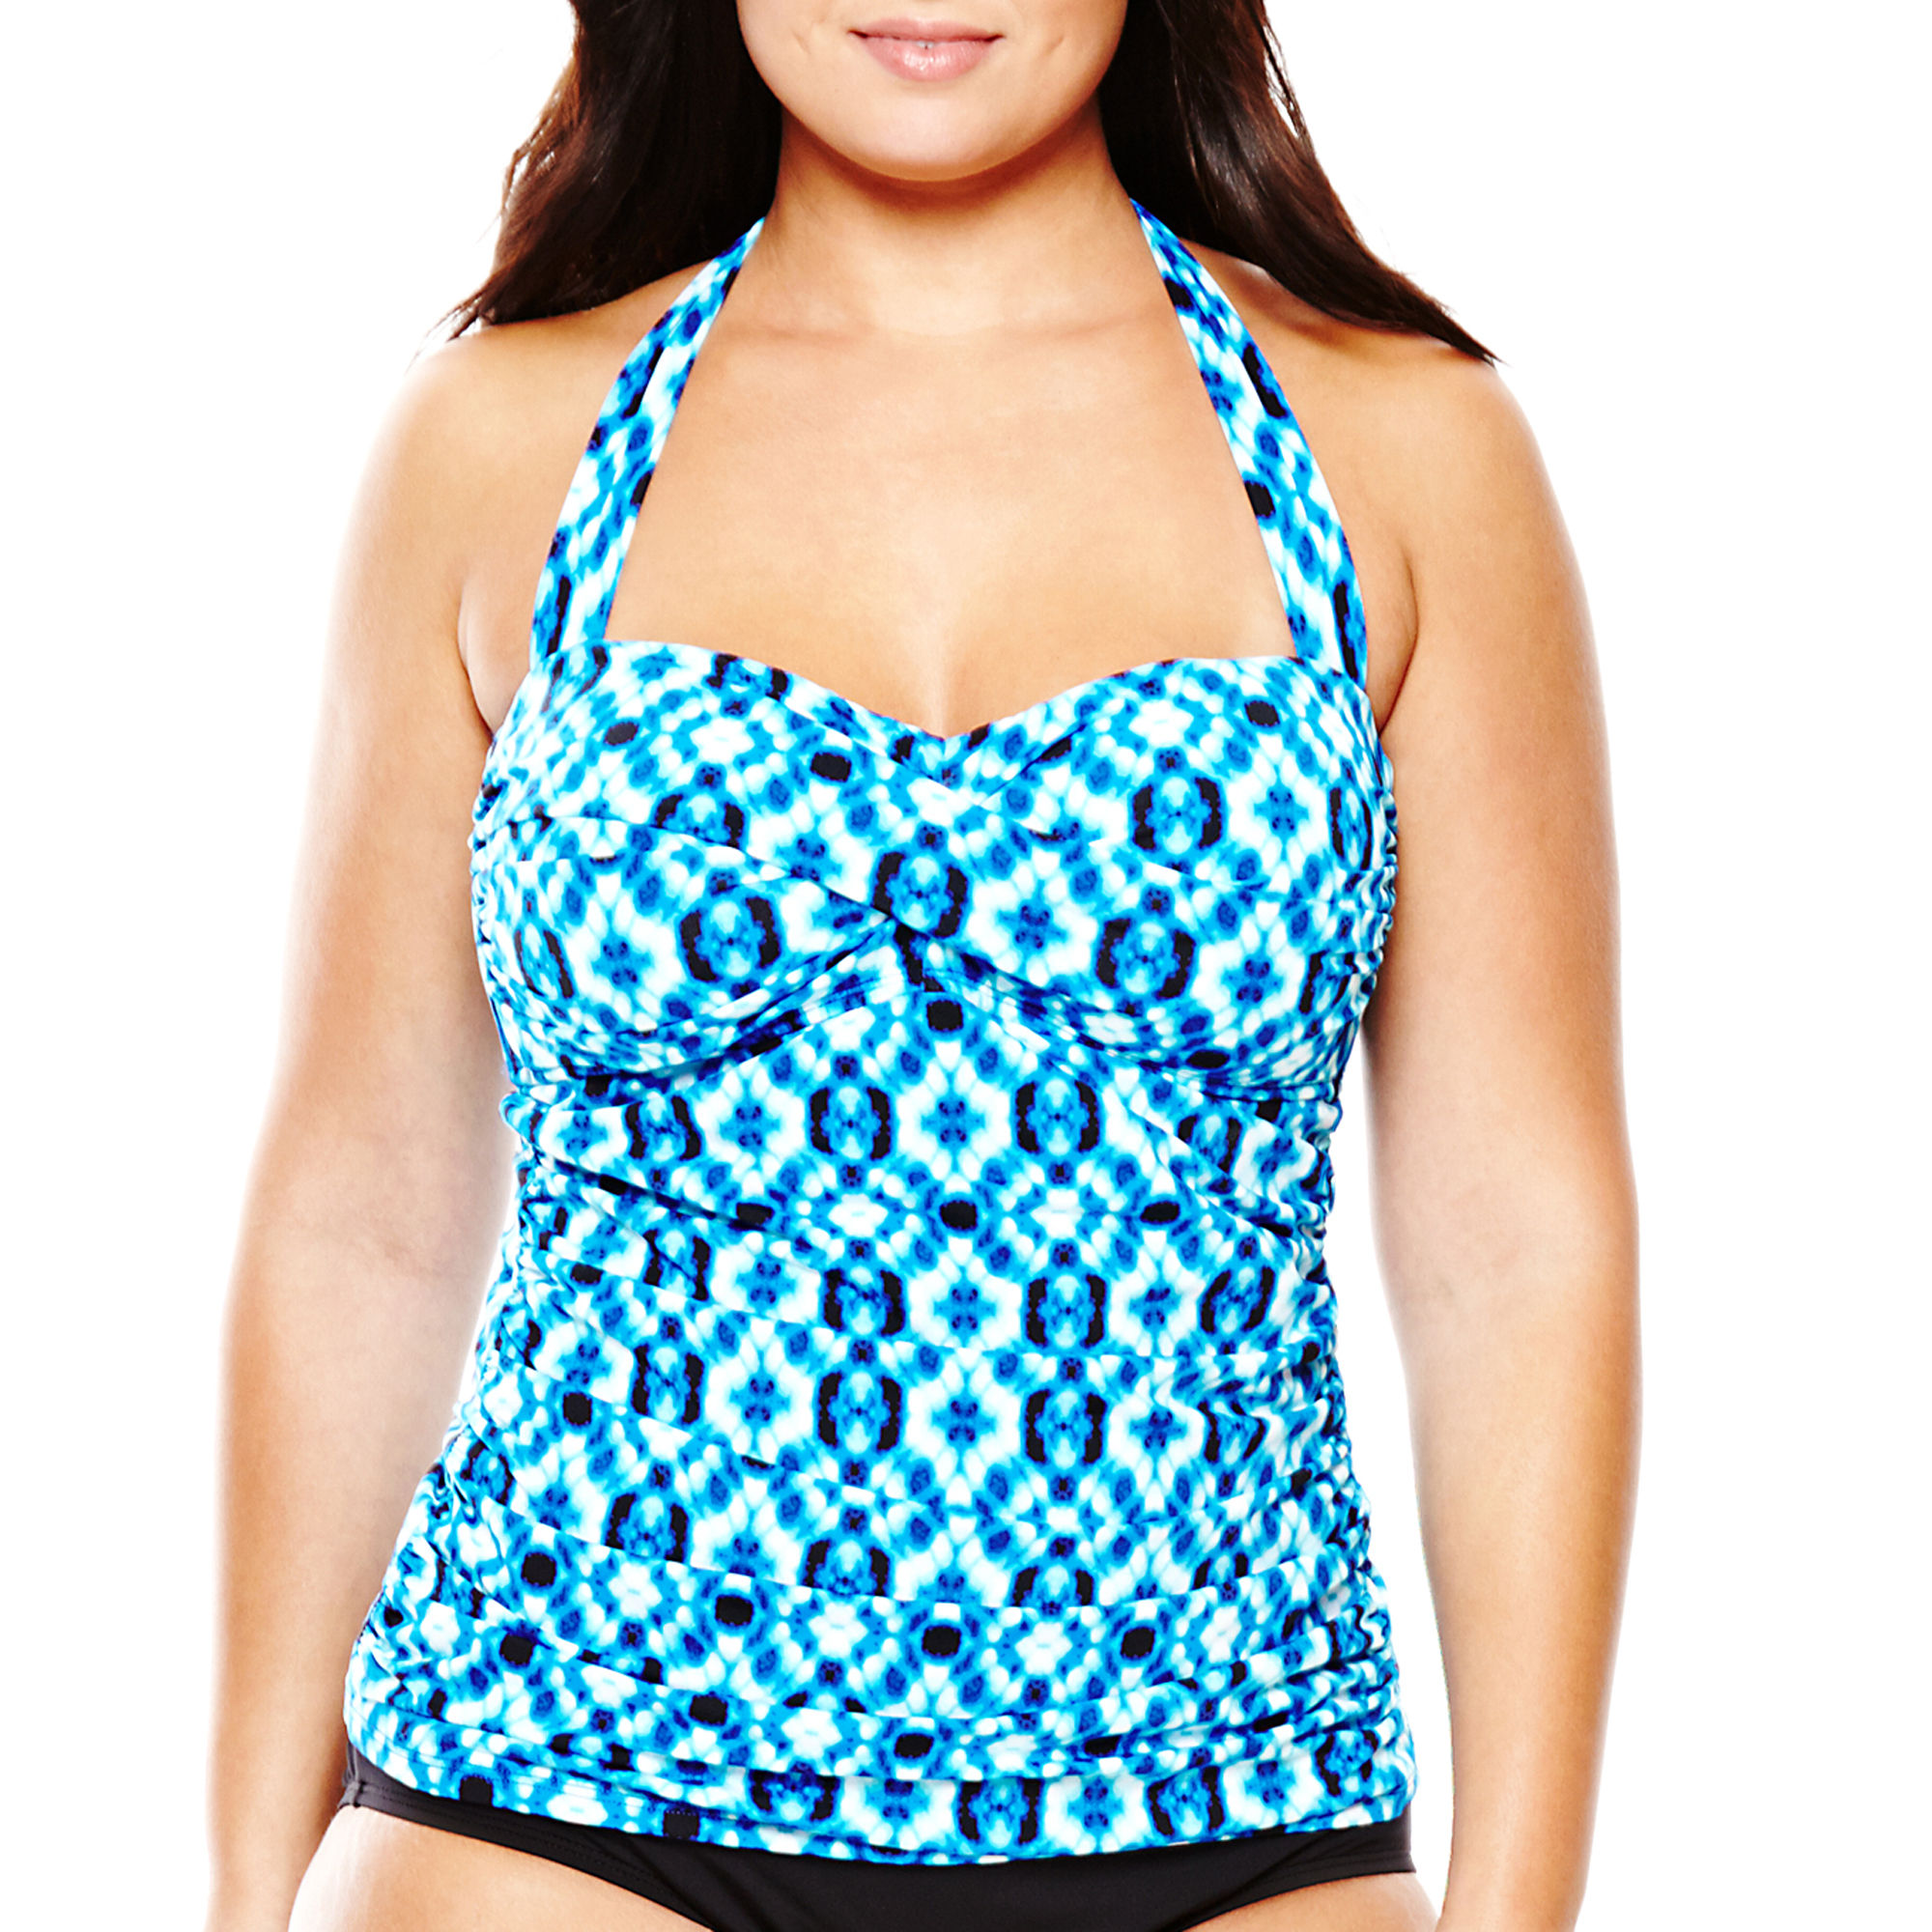 a.n.a Twist Bandeaukini Swim Top - Plus